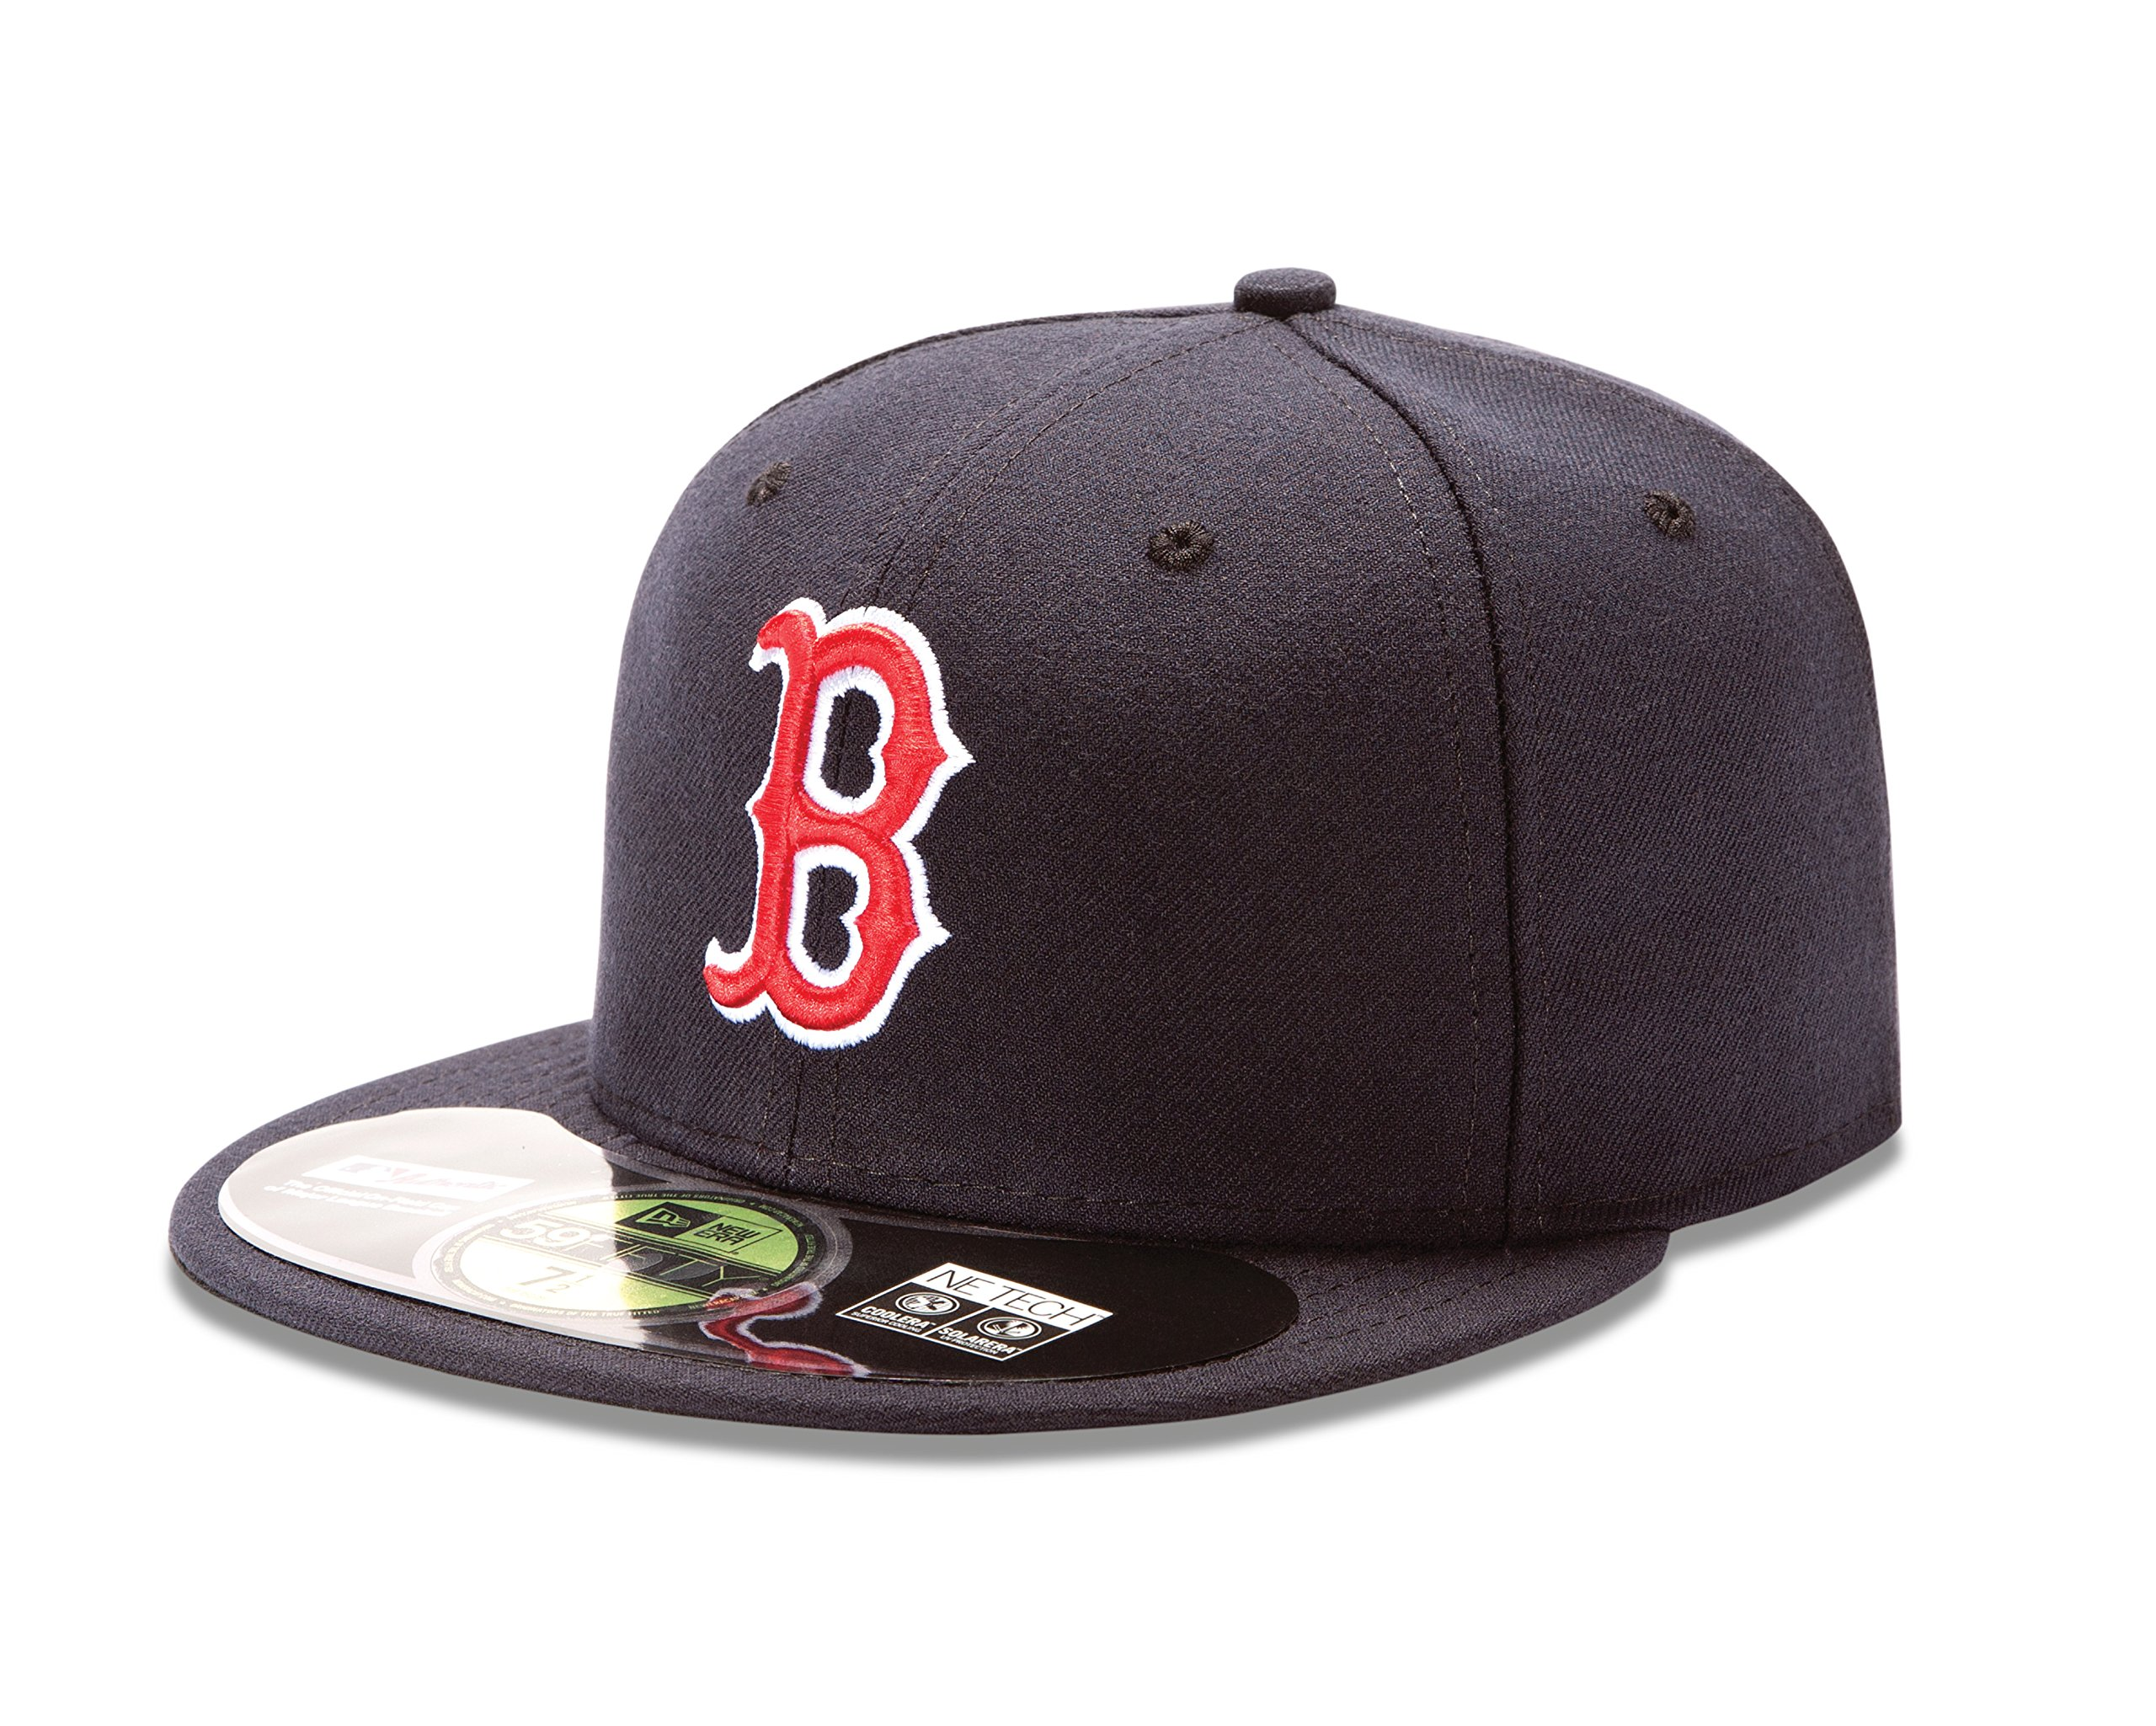 New Era 59Fifty Boston Red Sox 2013 World Series Mens Fitted Hat 7